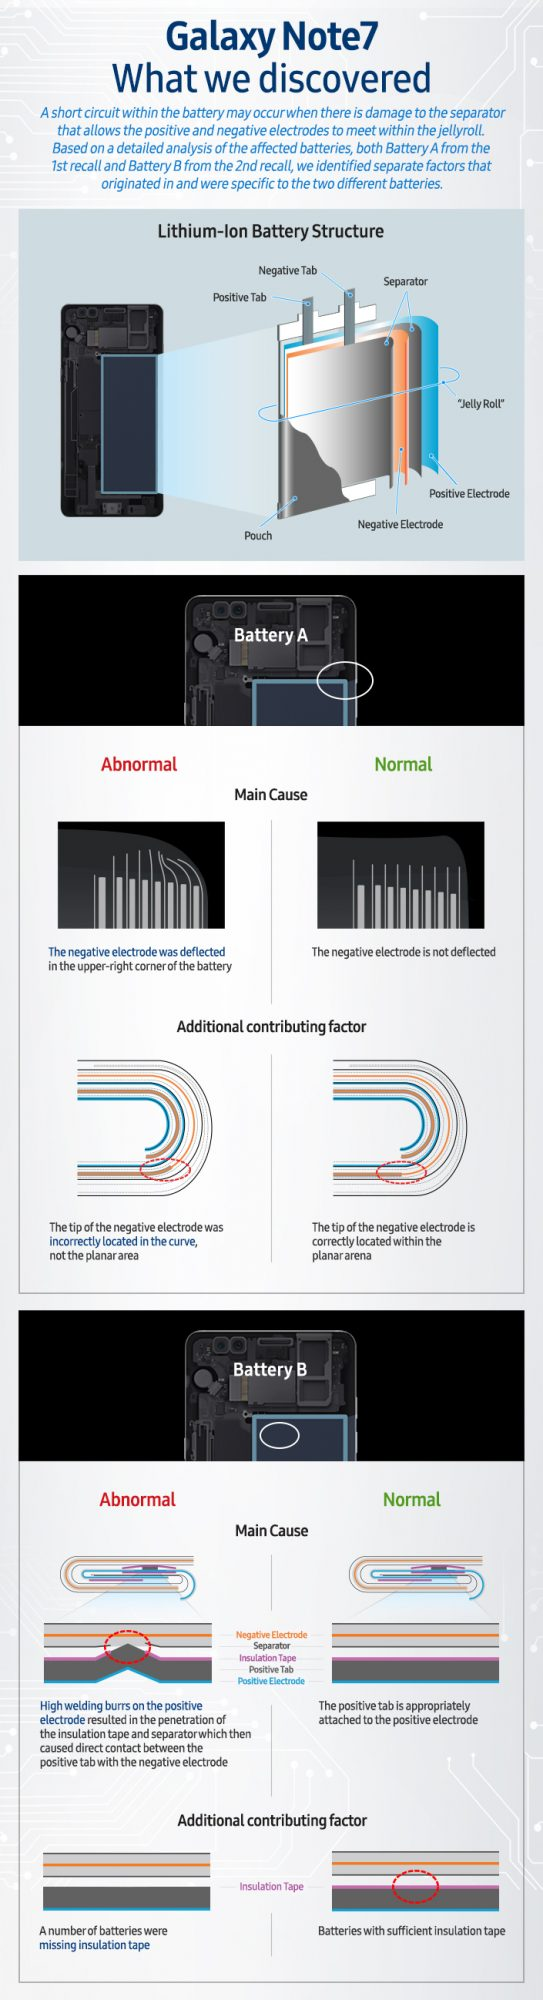 Infographic-Galaxy-Note7-What-we-discovered